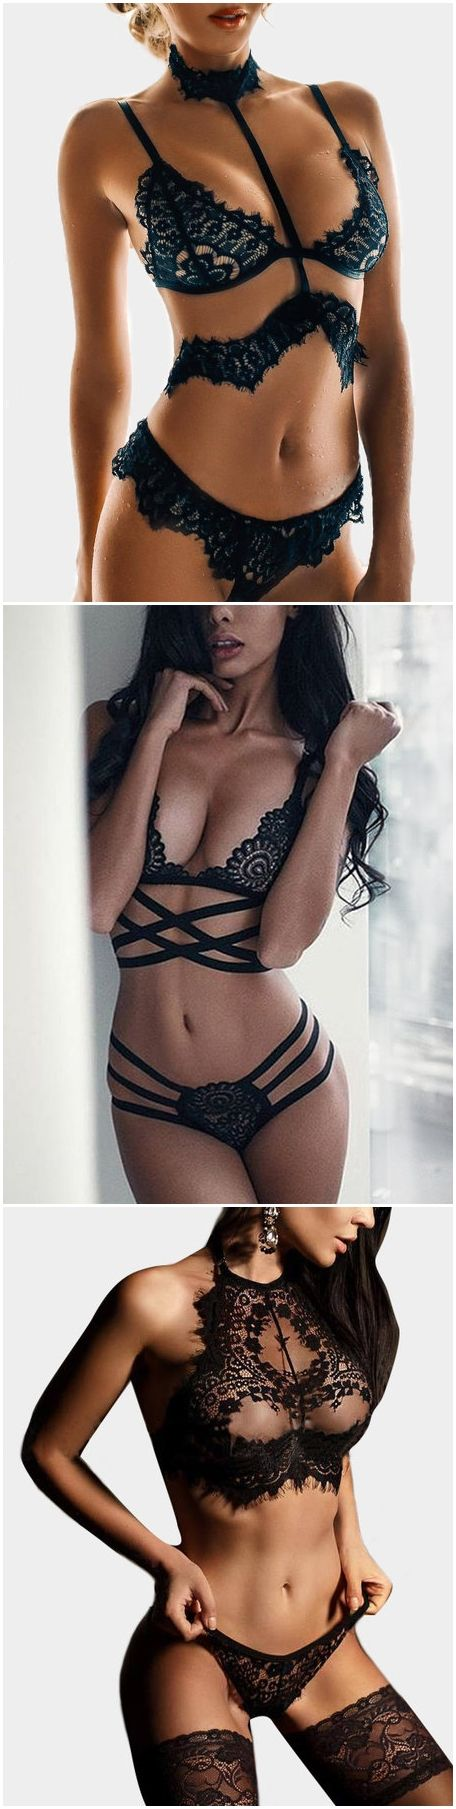 Black Sweet Embellished Lace Intimates Set only for him....no sneak peak..wtf